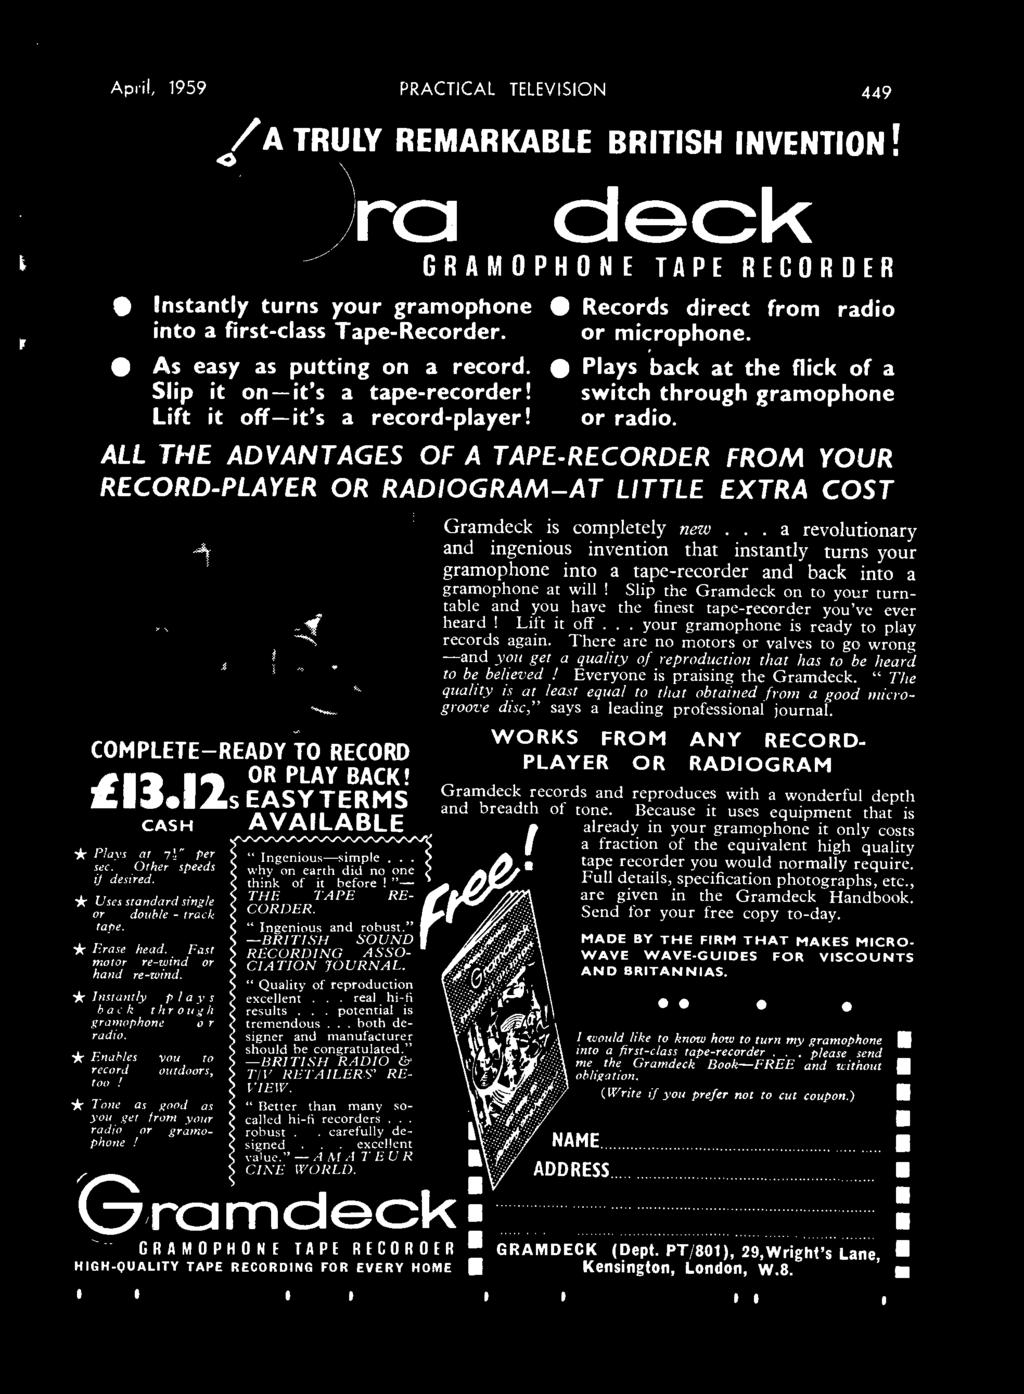 Plays back at the flick of a switch through gramophone or radio. ALL THE ADVANTAGES OF A TAPE -RECORDER FROM YOUR RECORD- PLAYER OR RADIOGRAM -AT LITTLE EXTRA COST COMPLETE -READY TO RECORD í13.